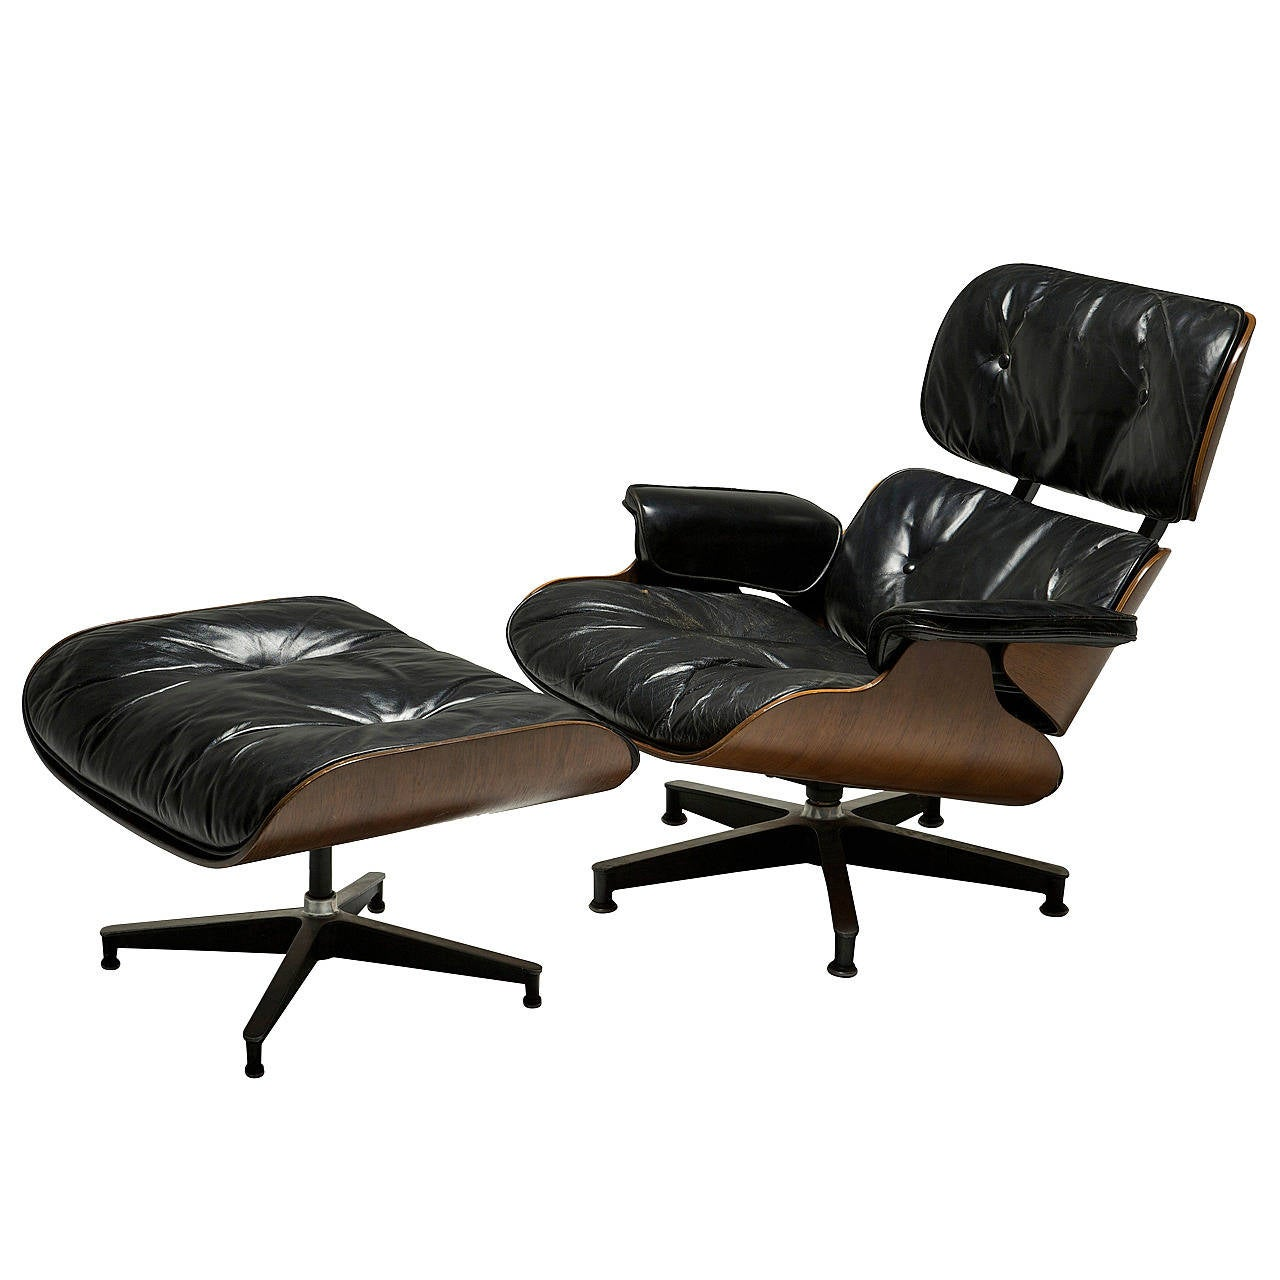 mid century eames lounge chair and ottoman at 1stdibs. Black Bedroom Furniture Sets. Home Design Ideas